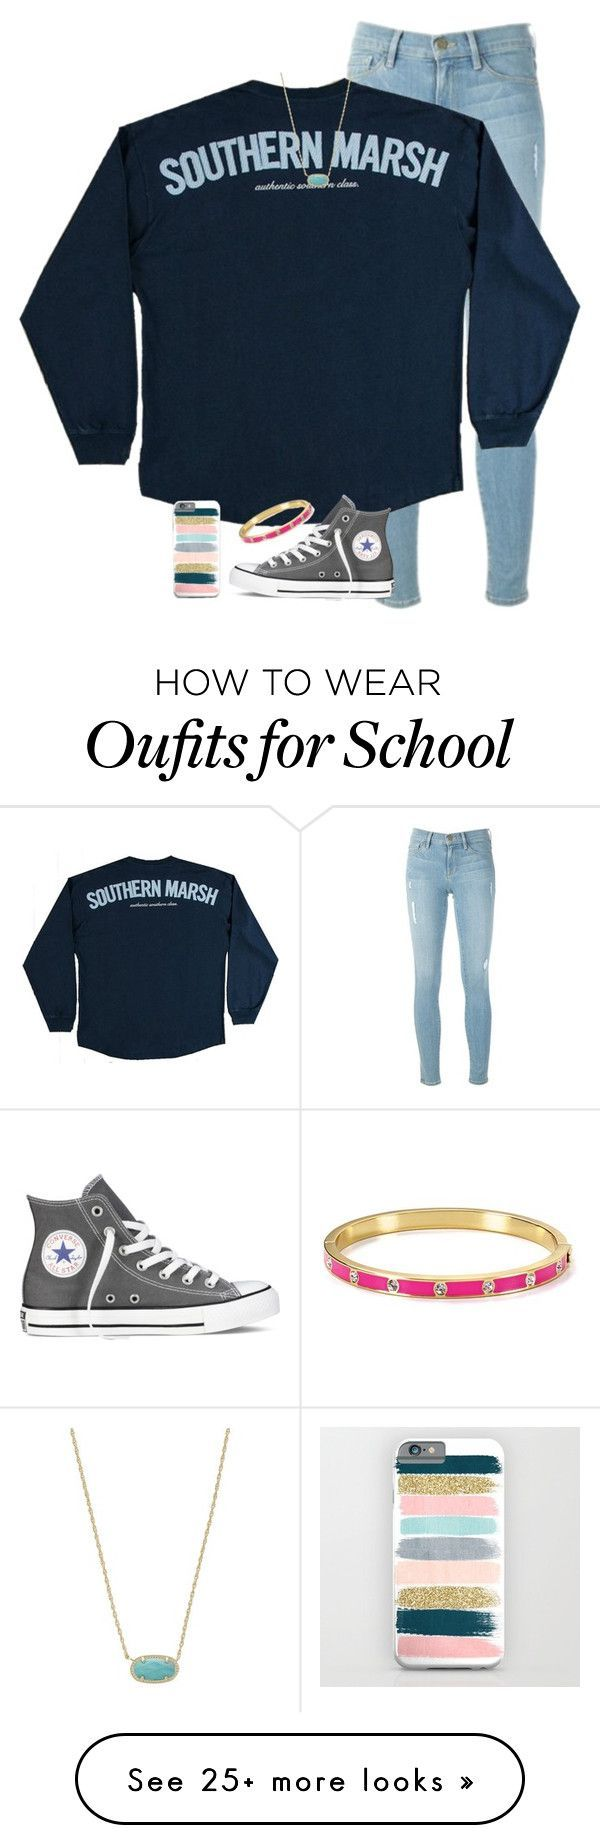 ay no school again tomorrow im hype by preppin on Polyvore featuring Frame Denim, Converse, Kendra Scott, Kate Spade, womens clothing, women, female, woman, misses and juniors